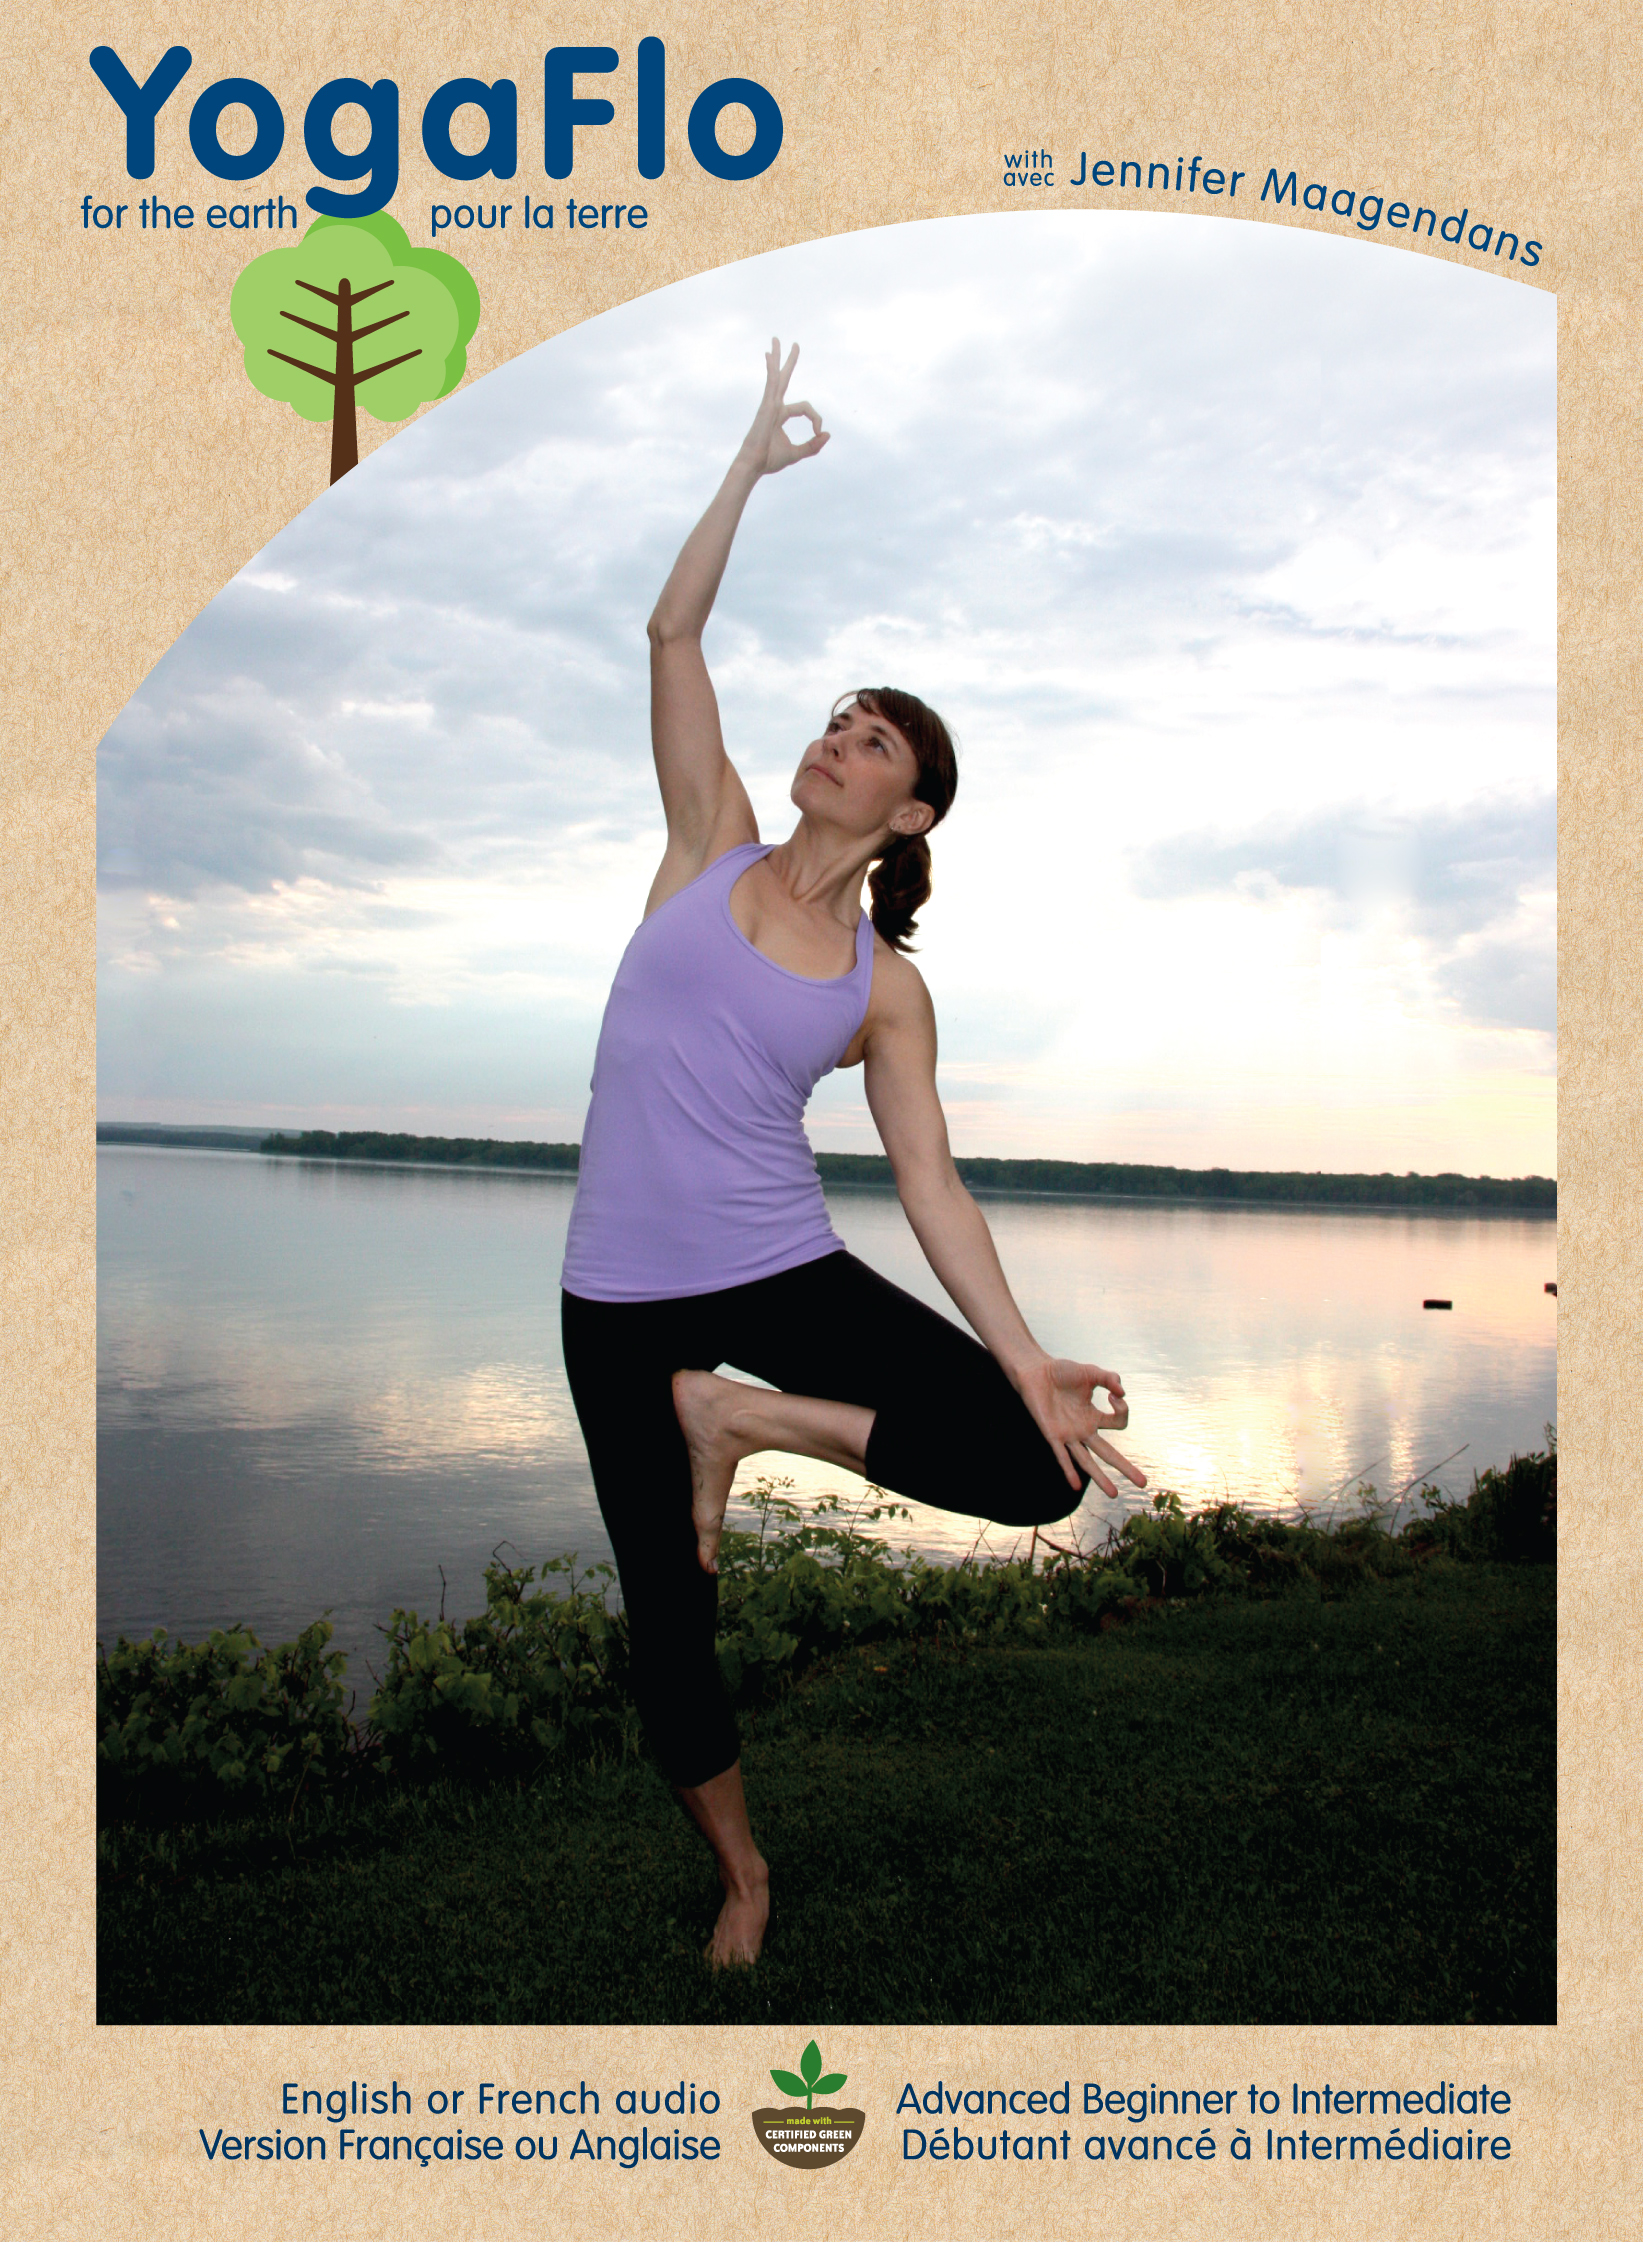 YogaFlo for the earth